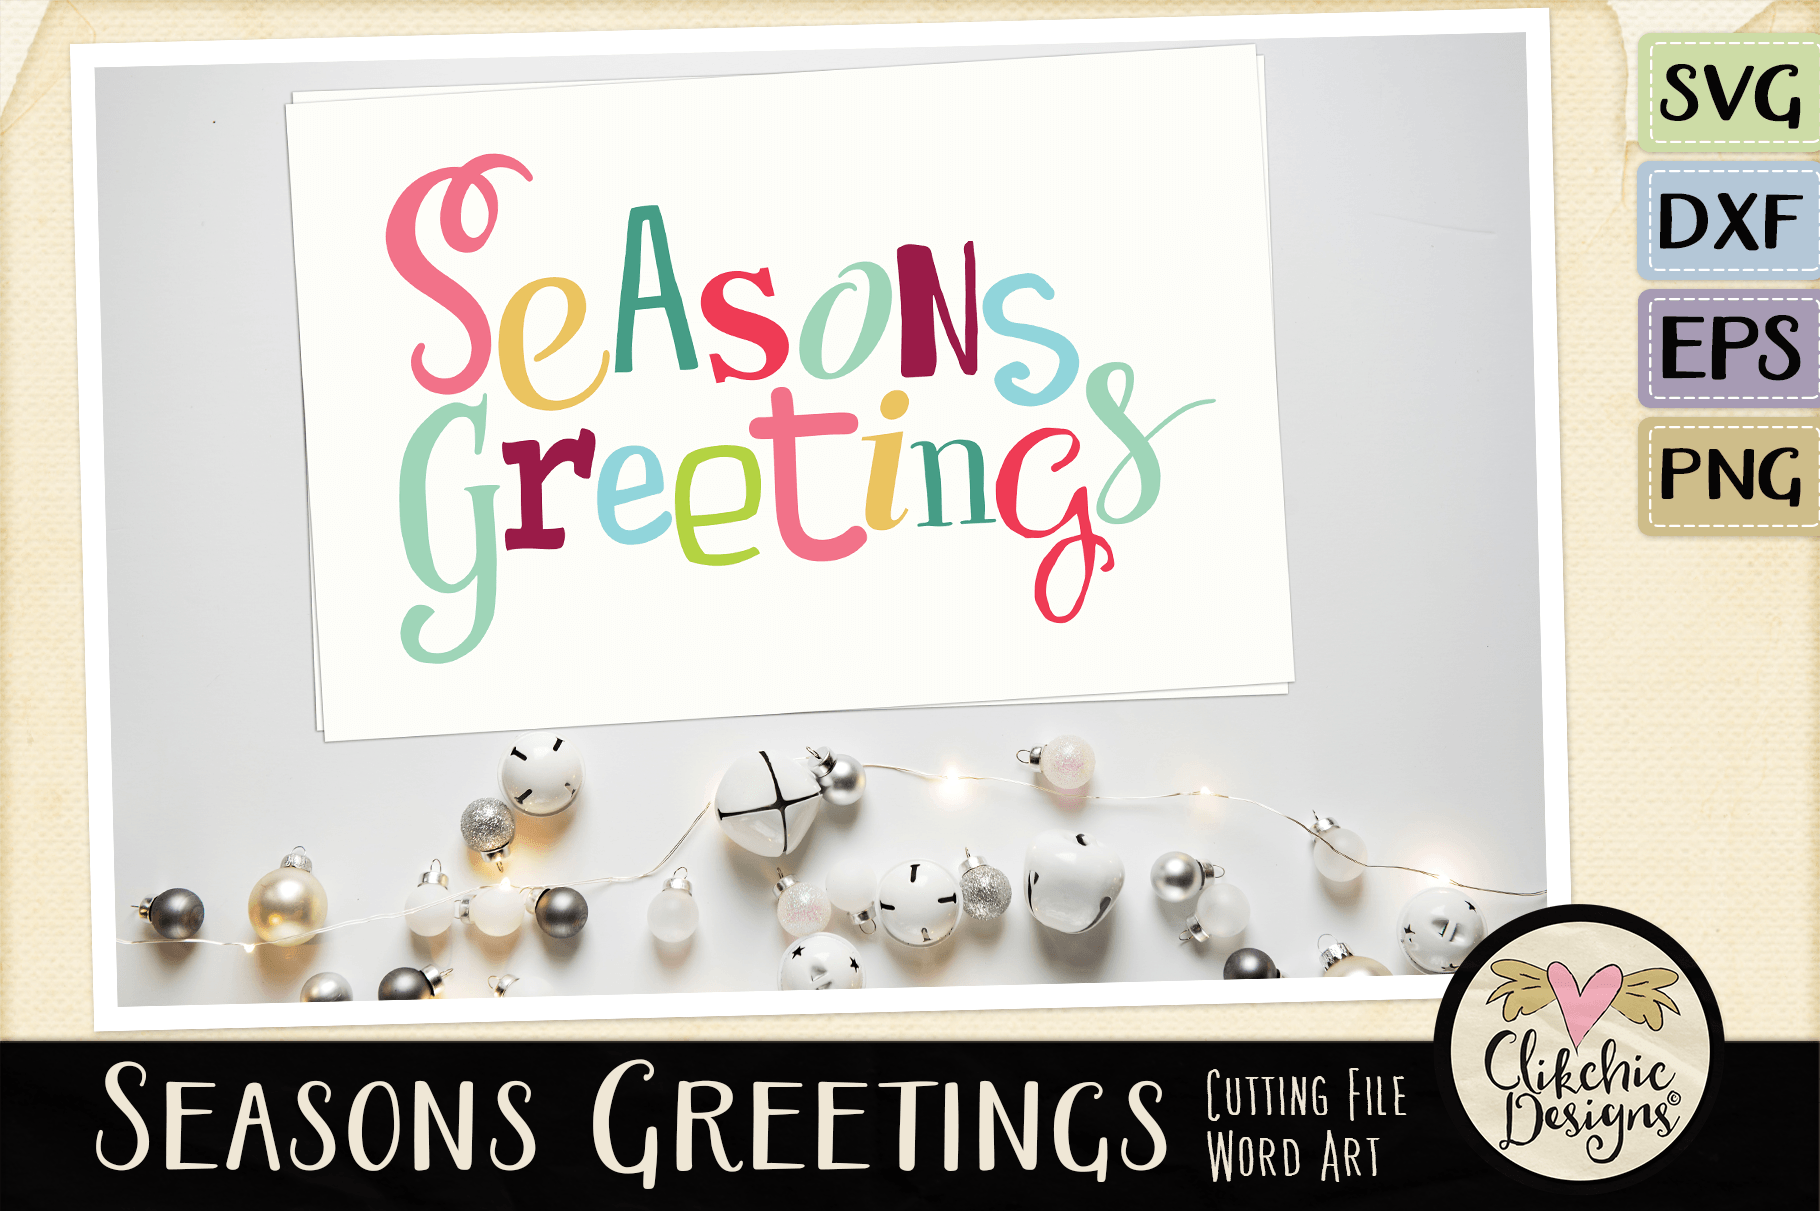 Chistmas SVG - Seasons Greetings Word Art & Vector Clipart example image 3